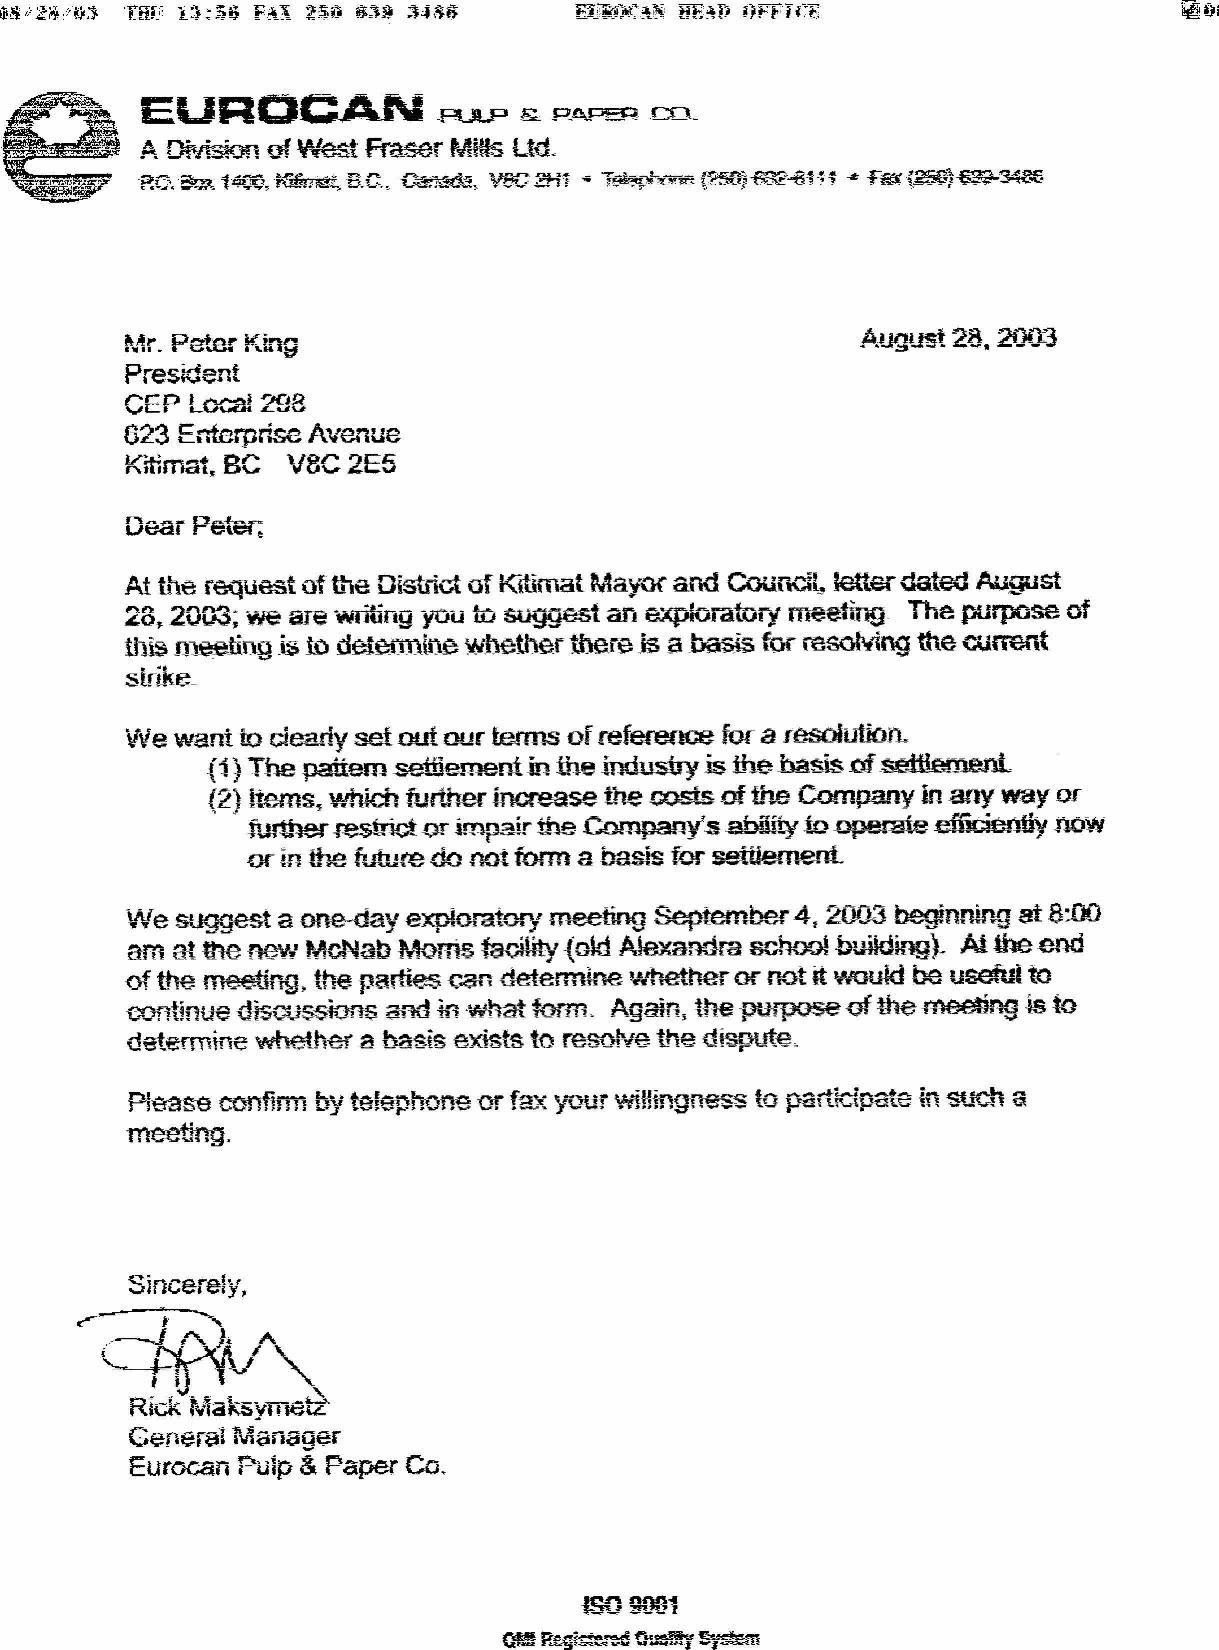 Cep local 298 the district of kitimat on thursday august 28 2003 sent us this letter we have been asked to take part in an exploratory discussions stopboris Image collections